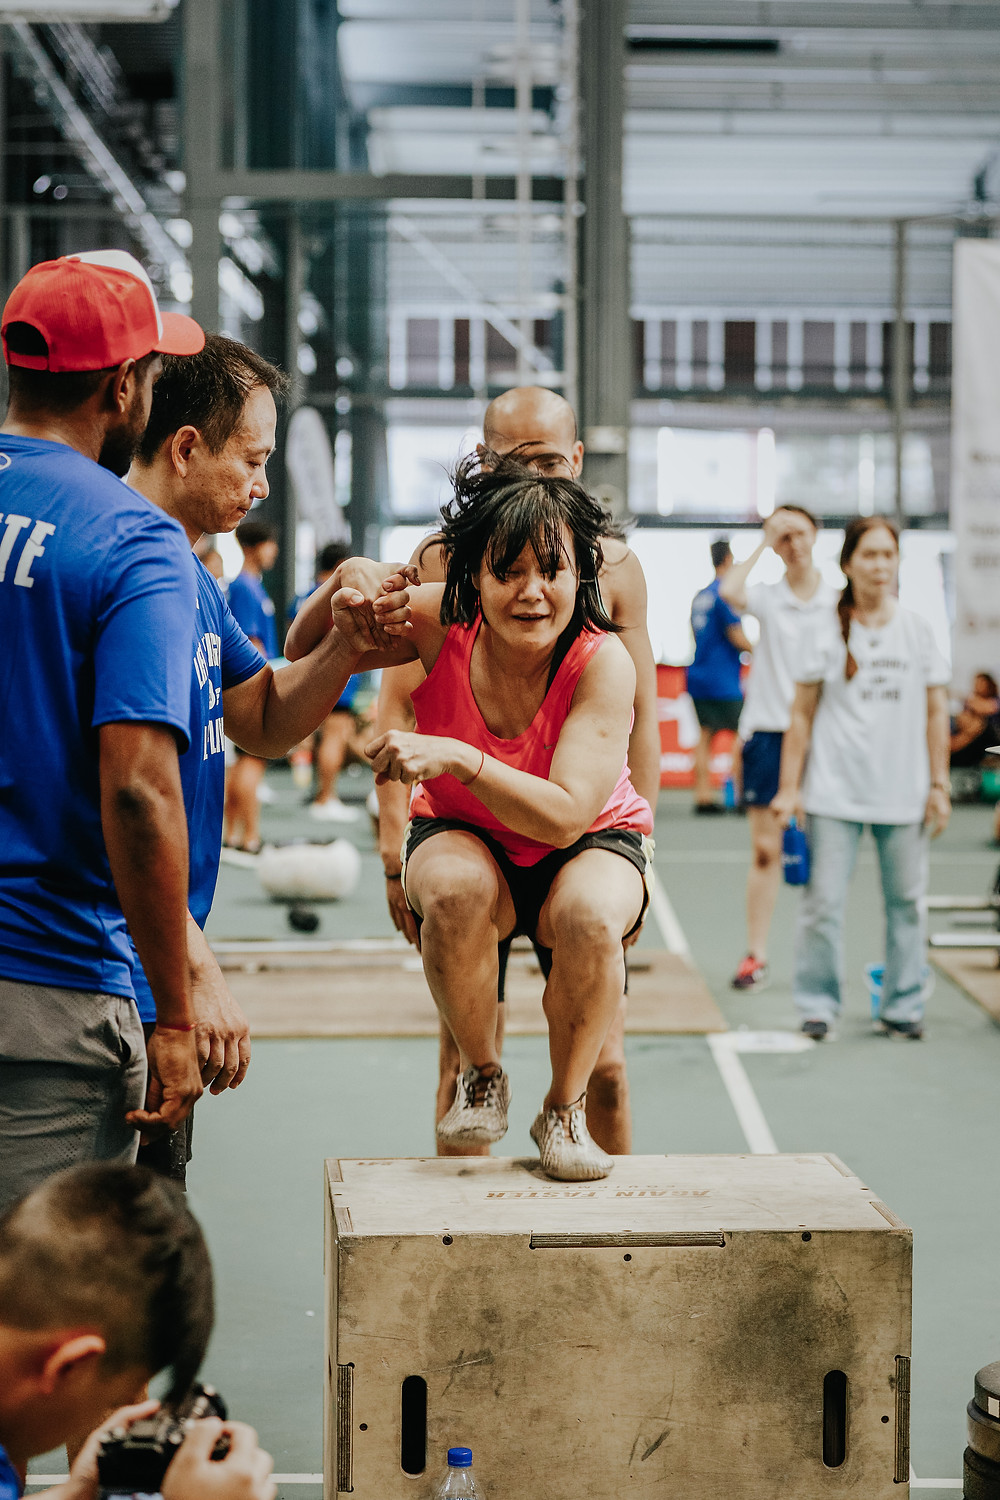 Innervate CrossFit Singapore Adaptive Athlete performing a Box Jump